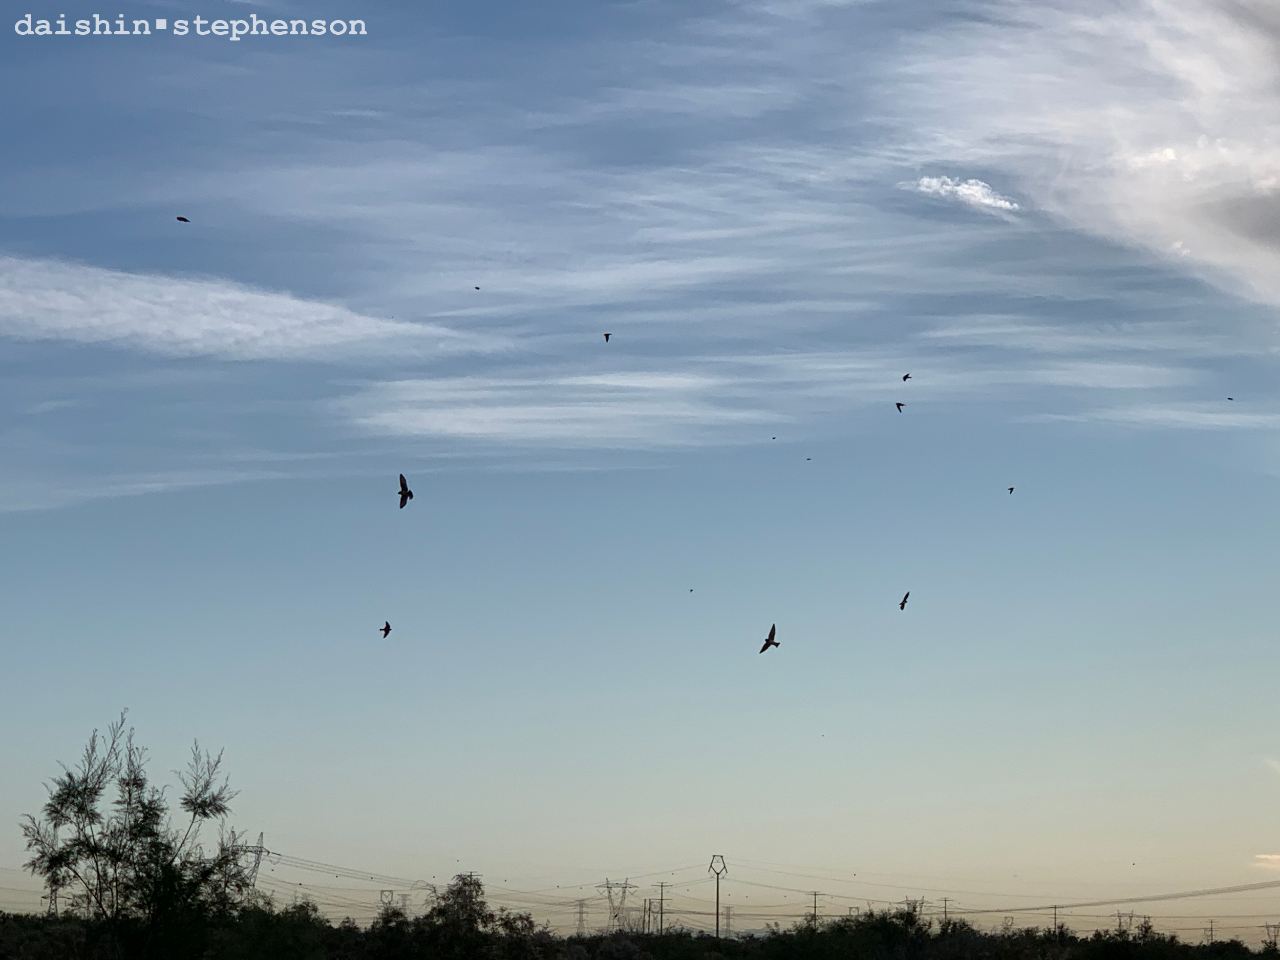 birds in flight at sunrise over desert